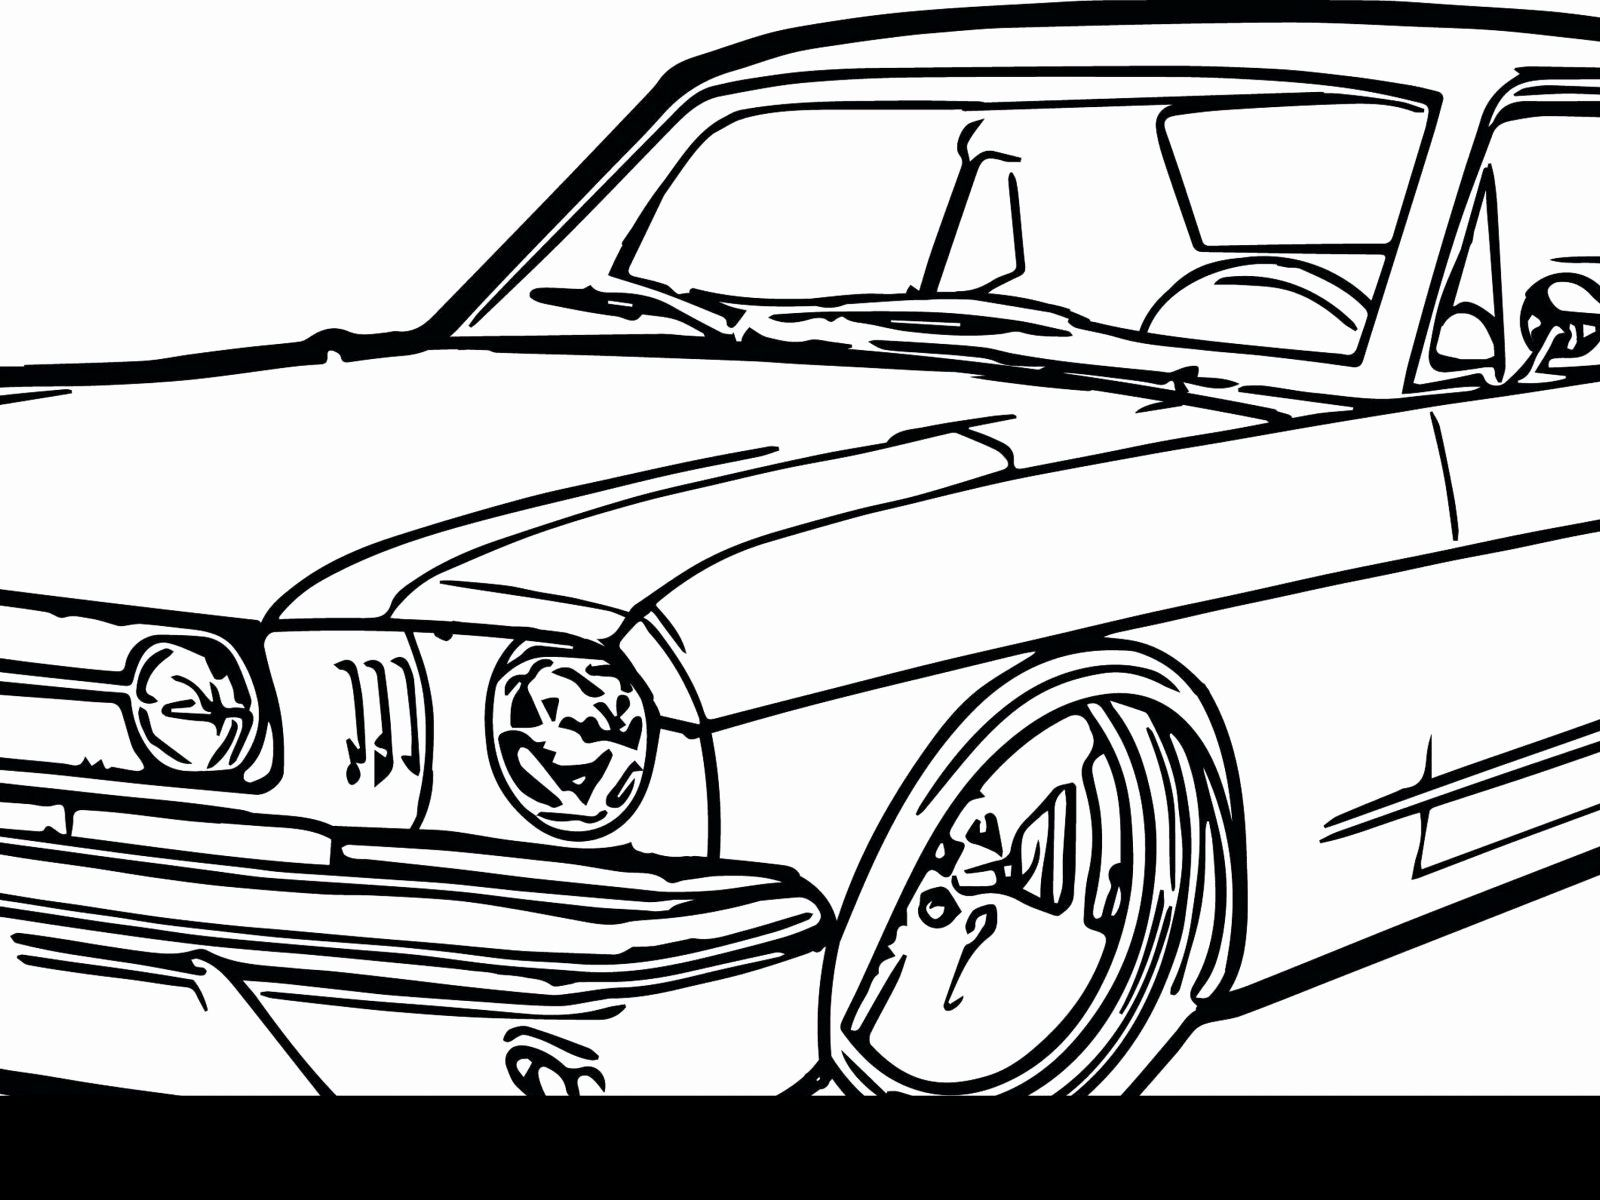 Lightning Mcqueen Printable Coloring Pages Lovely Coloring Book Lightning Mcqueen And Mater Coloring Pag Cars Coloring Pages Lightning Mcqueen Dirt Late Models